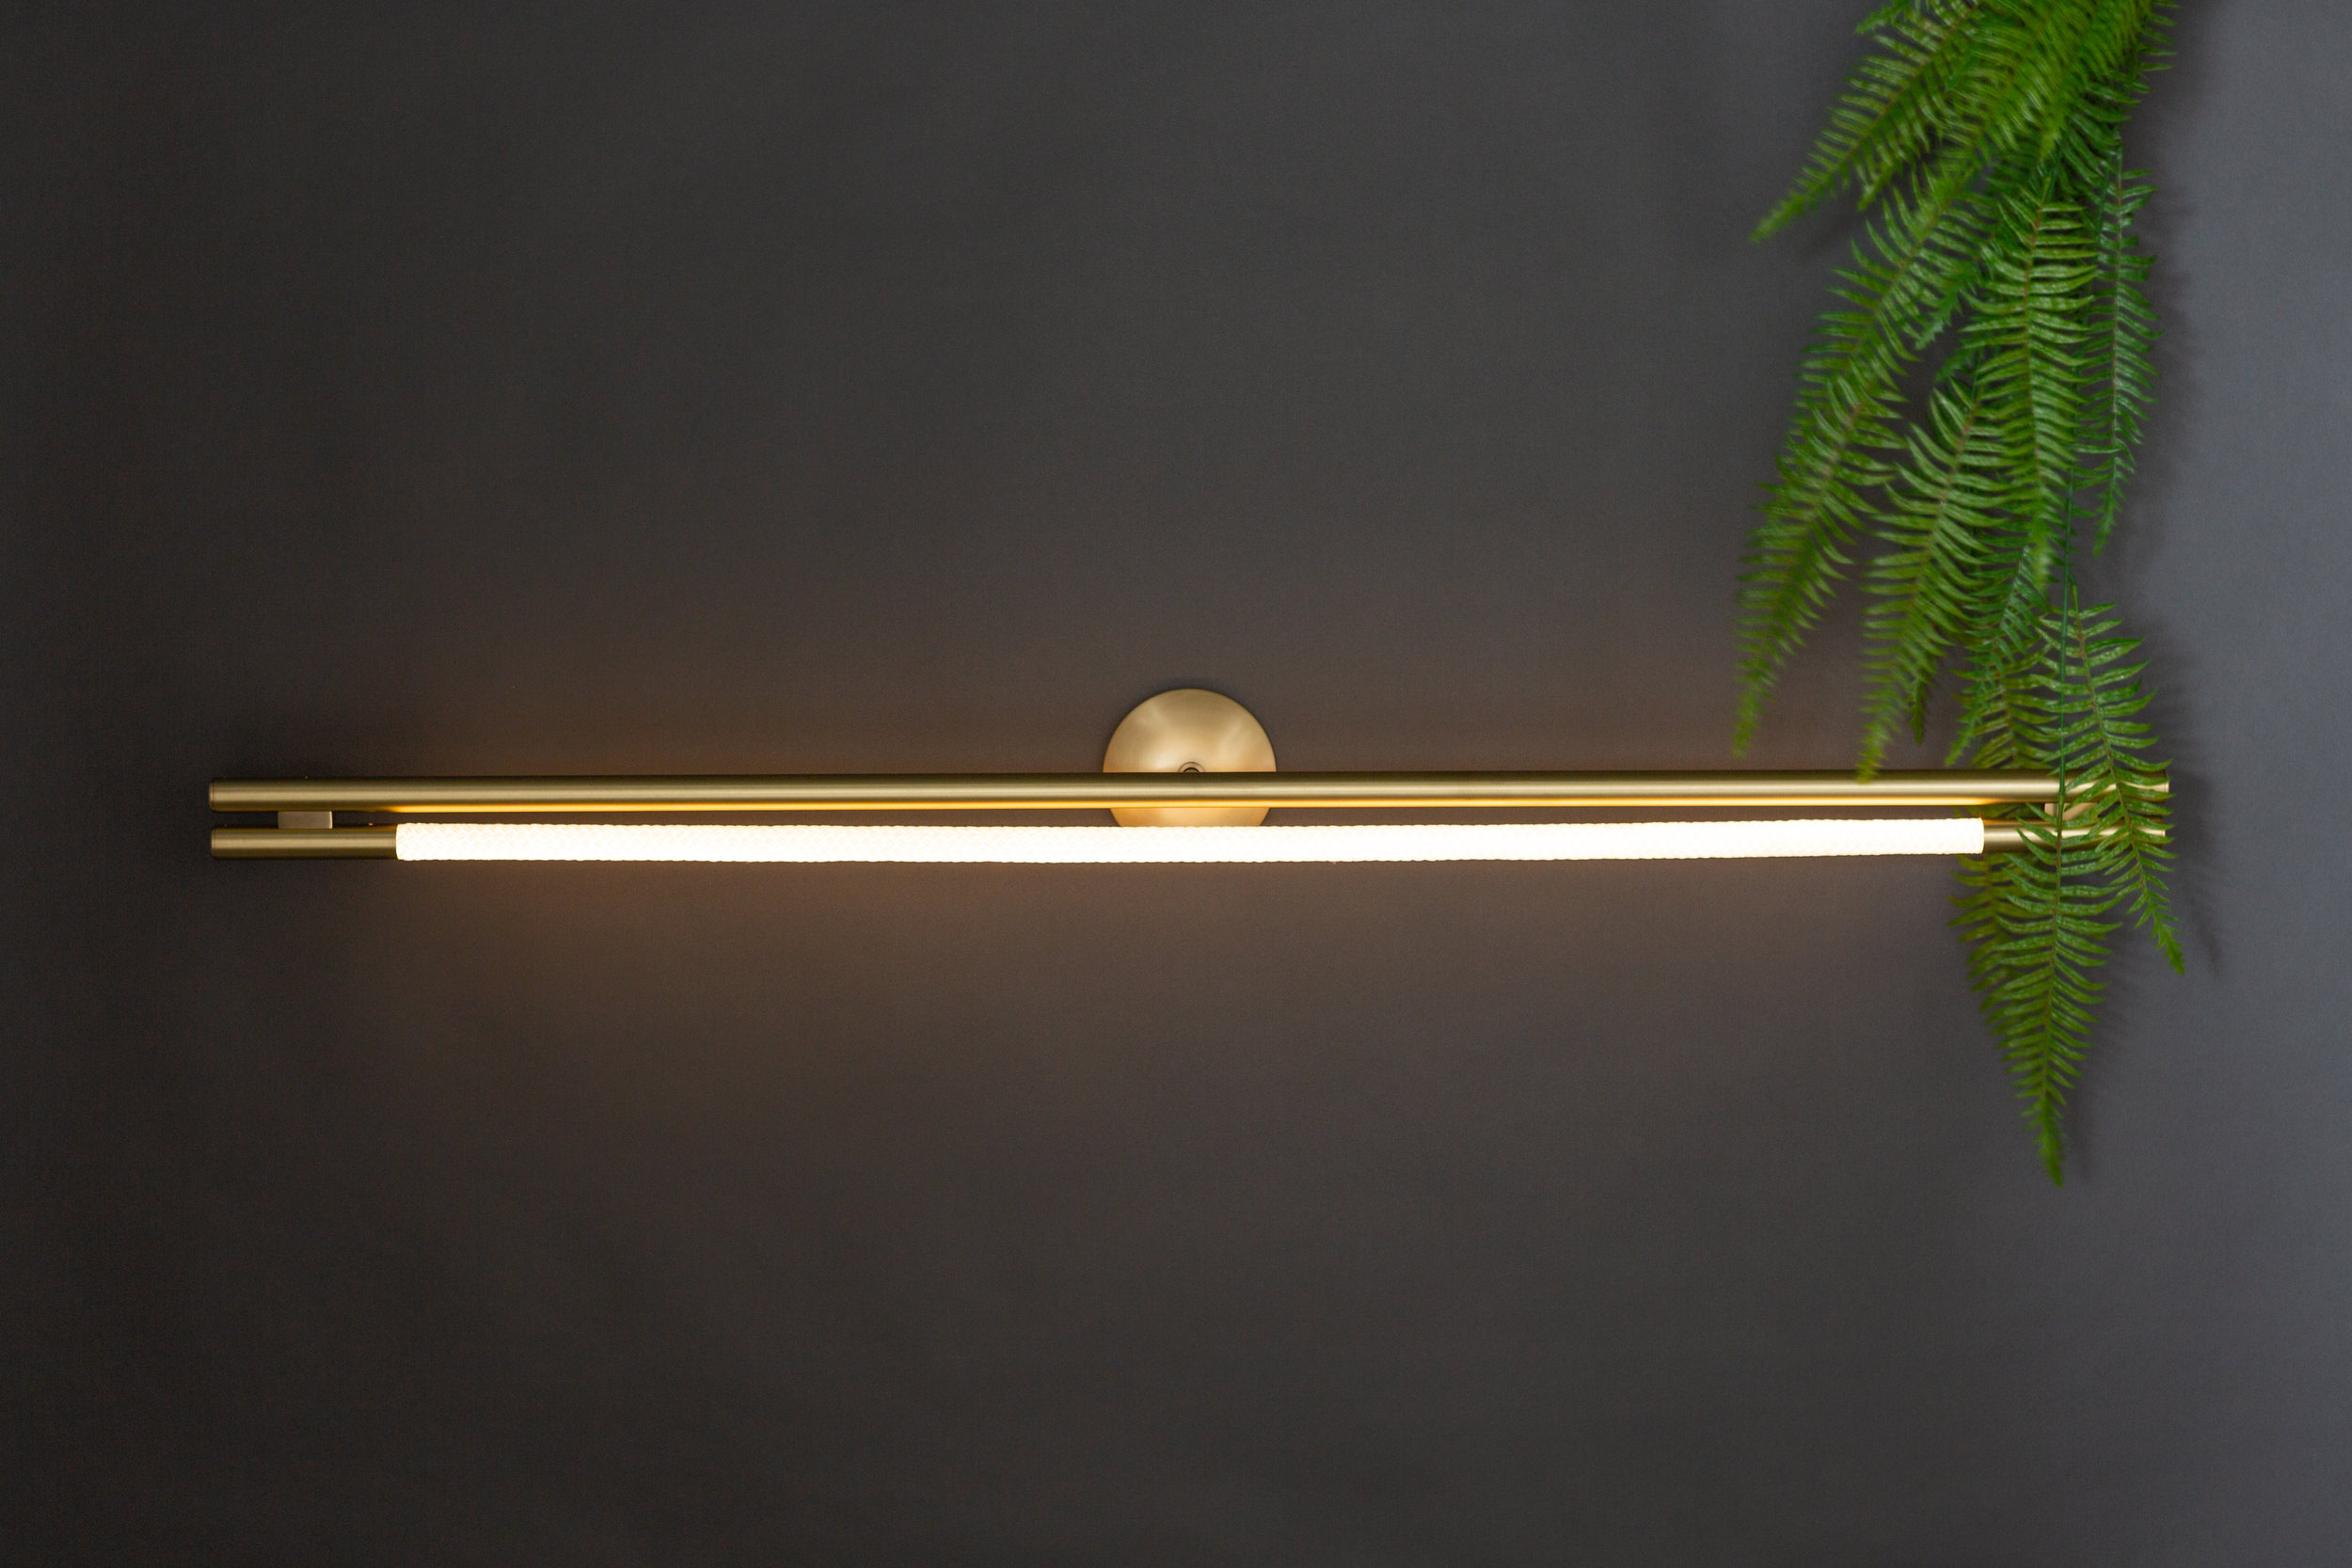 As pictured: 4.5' Leto Sconce in Satin Brass - Horizontal Orientation